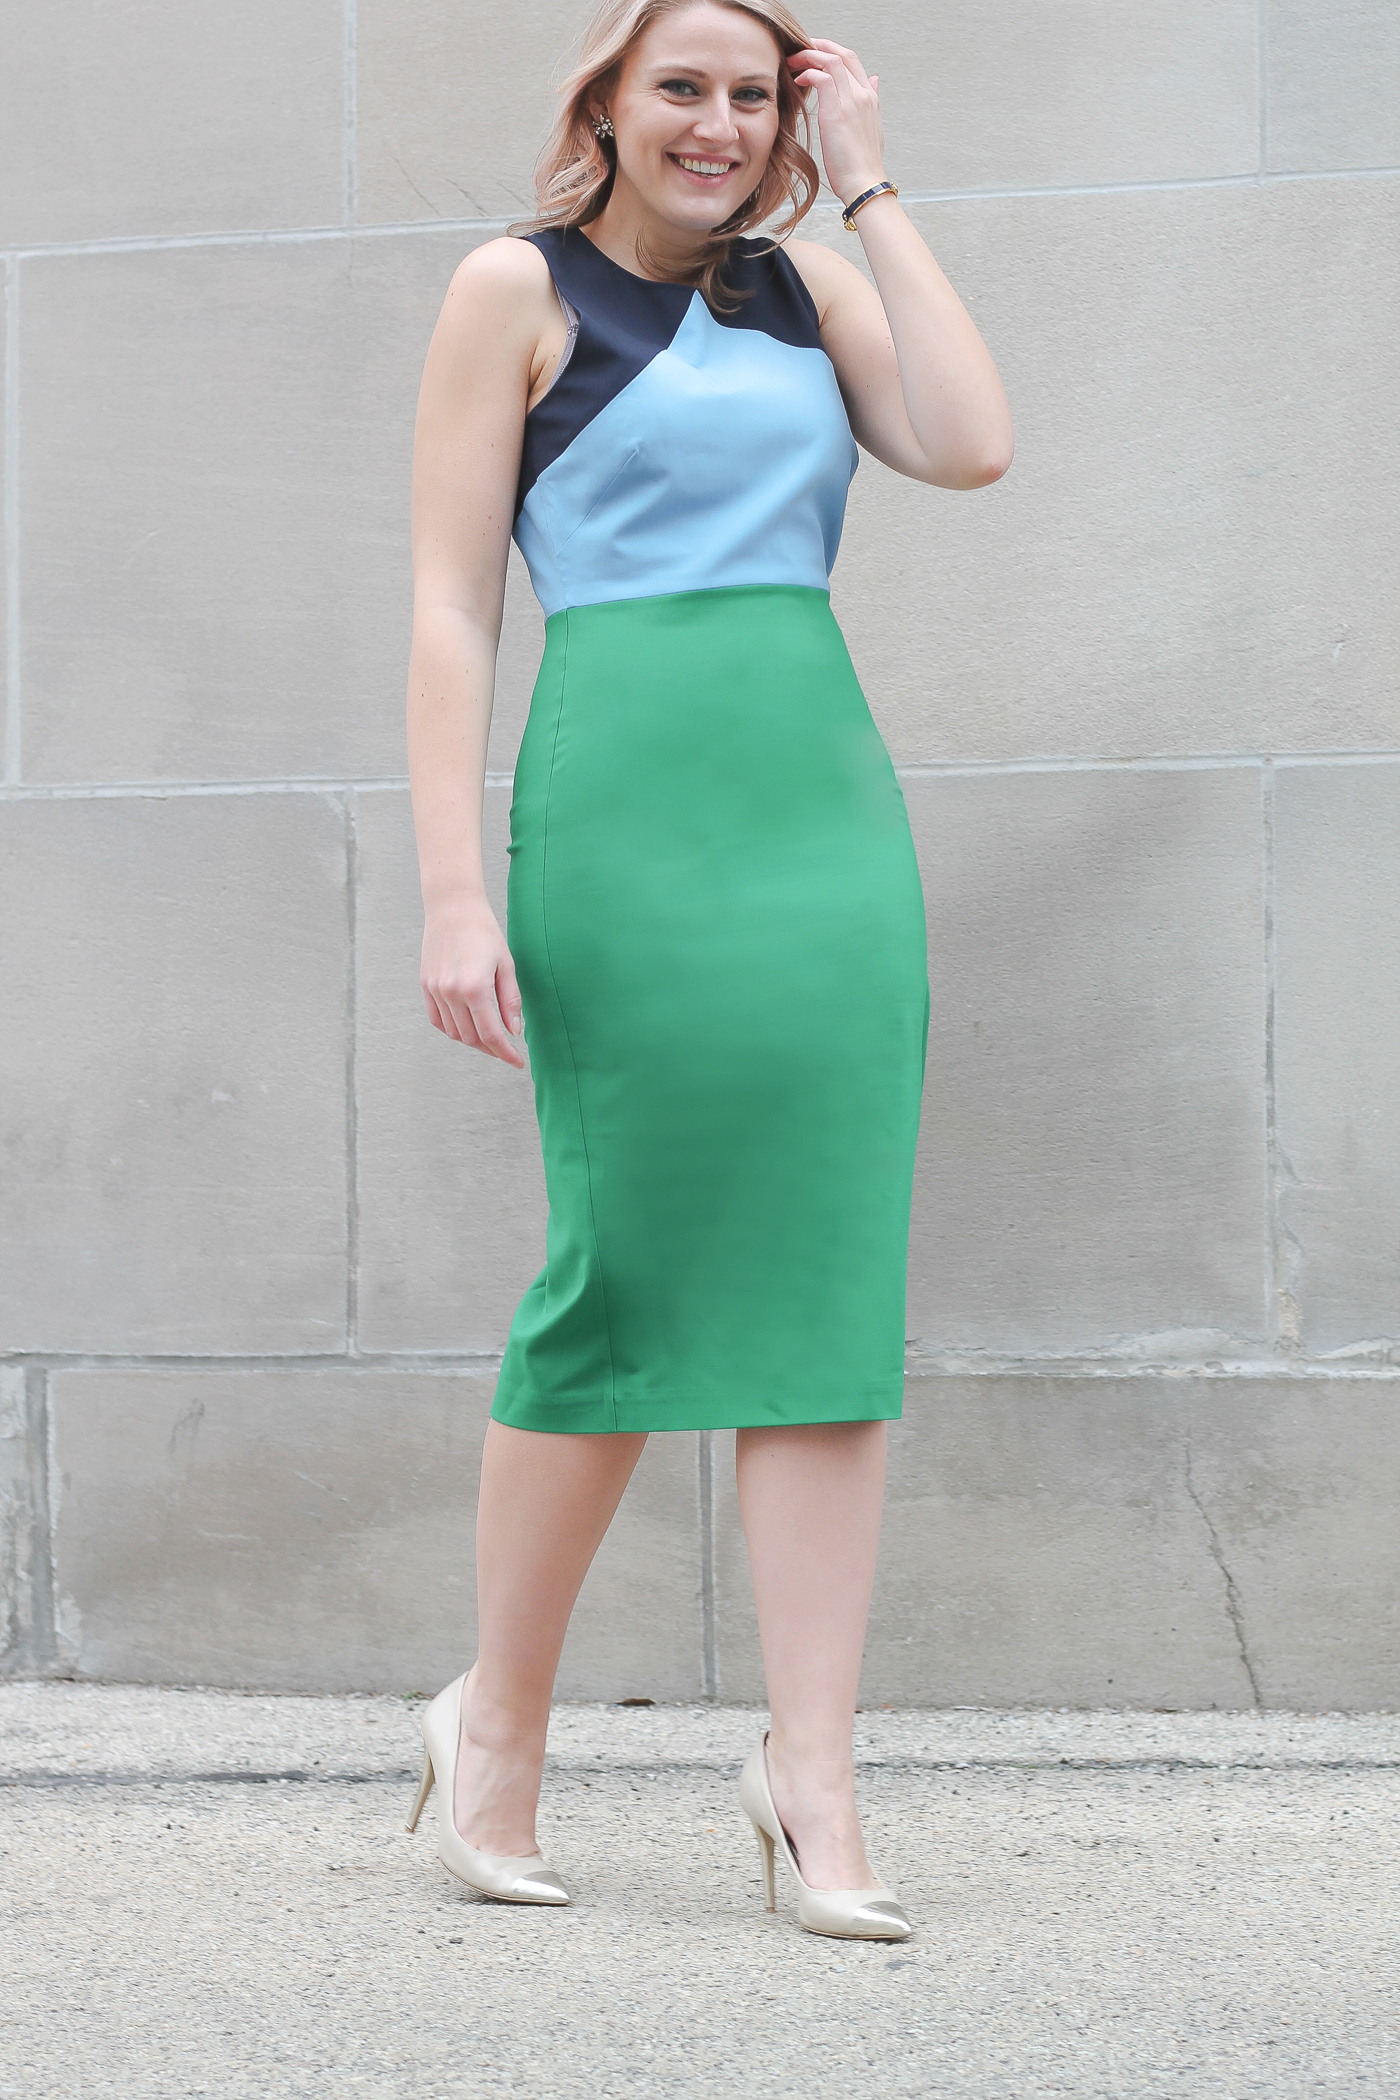 A few colorblock dress from DVF for your Spring wardrobe